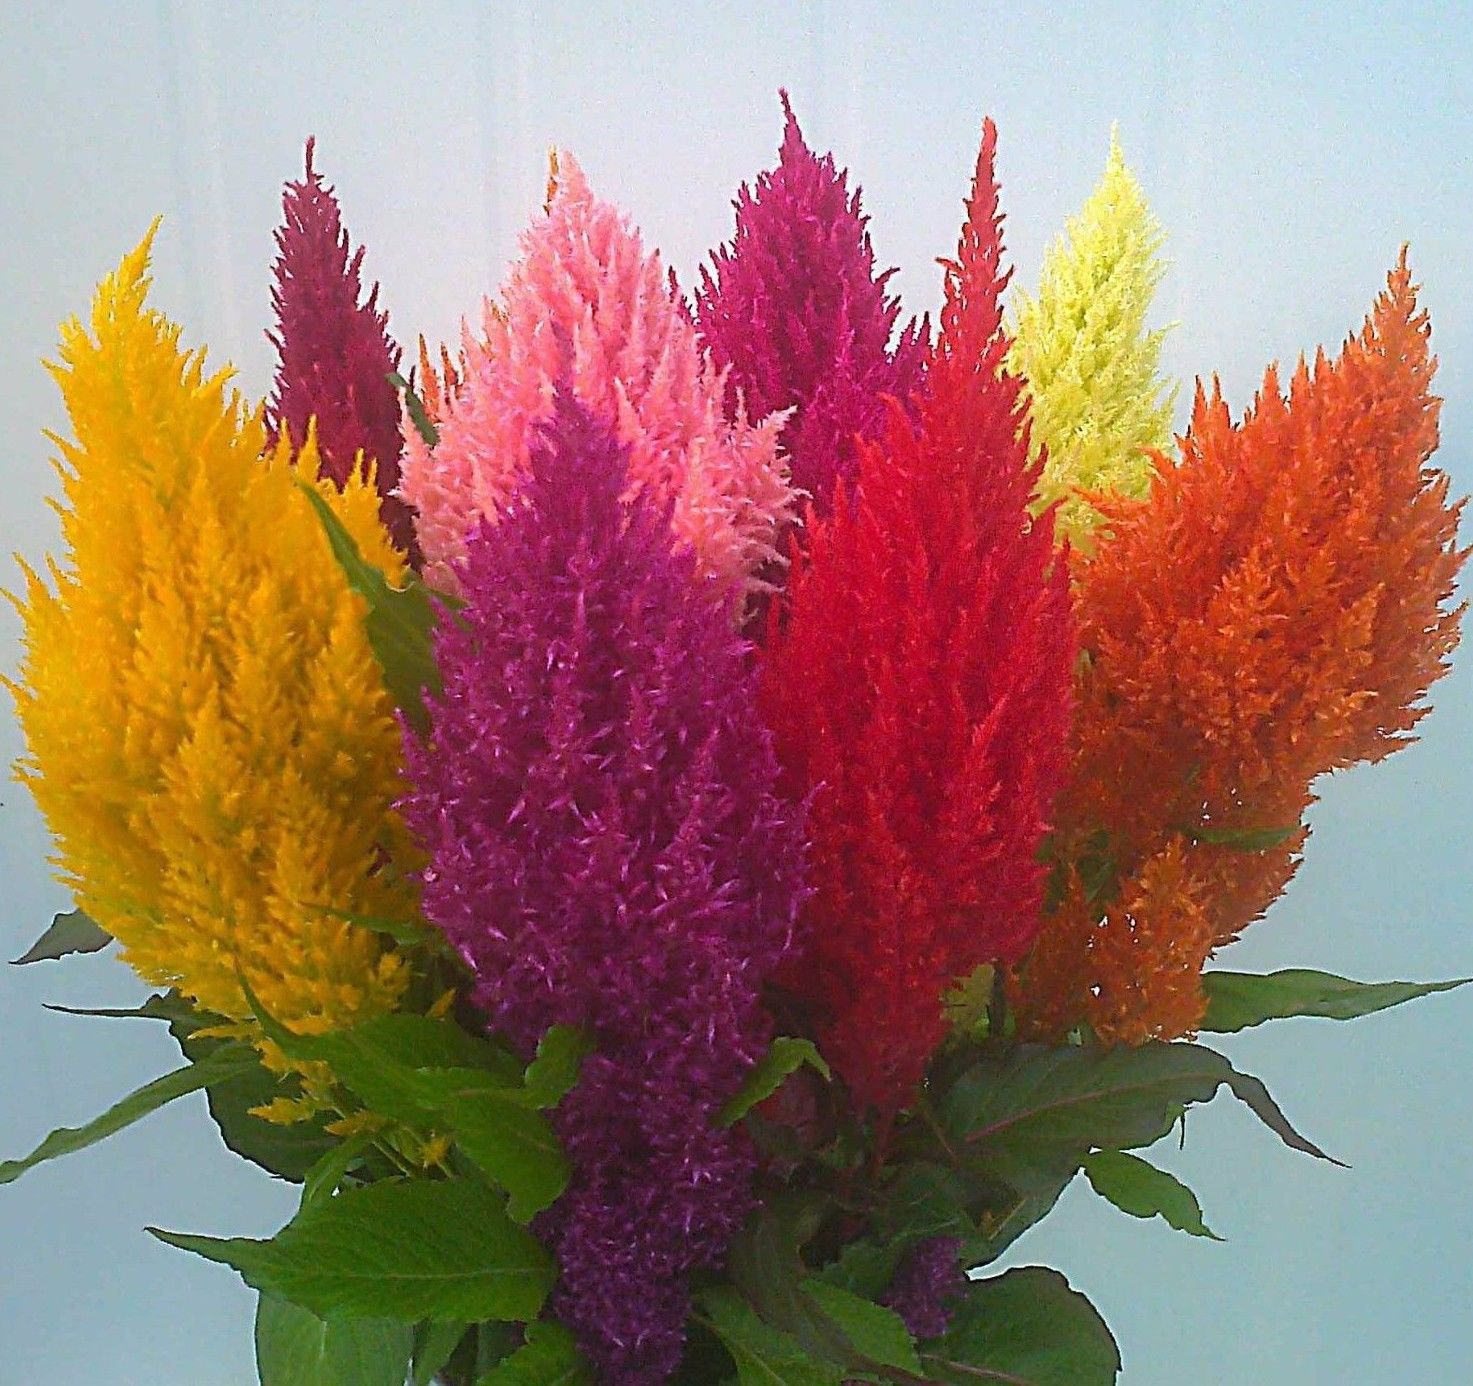 Plumed Cockscomb - Celosia argentea Mixed Color 150 seeds *SHIPPING FROM US* CombSH A83